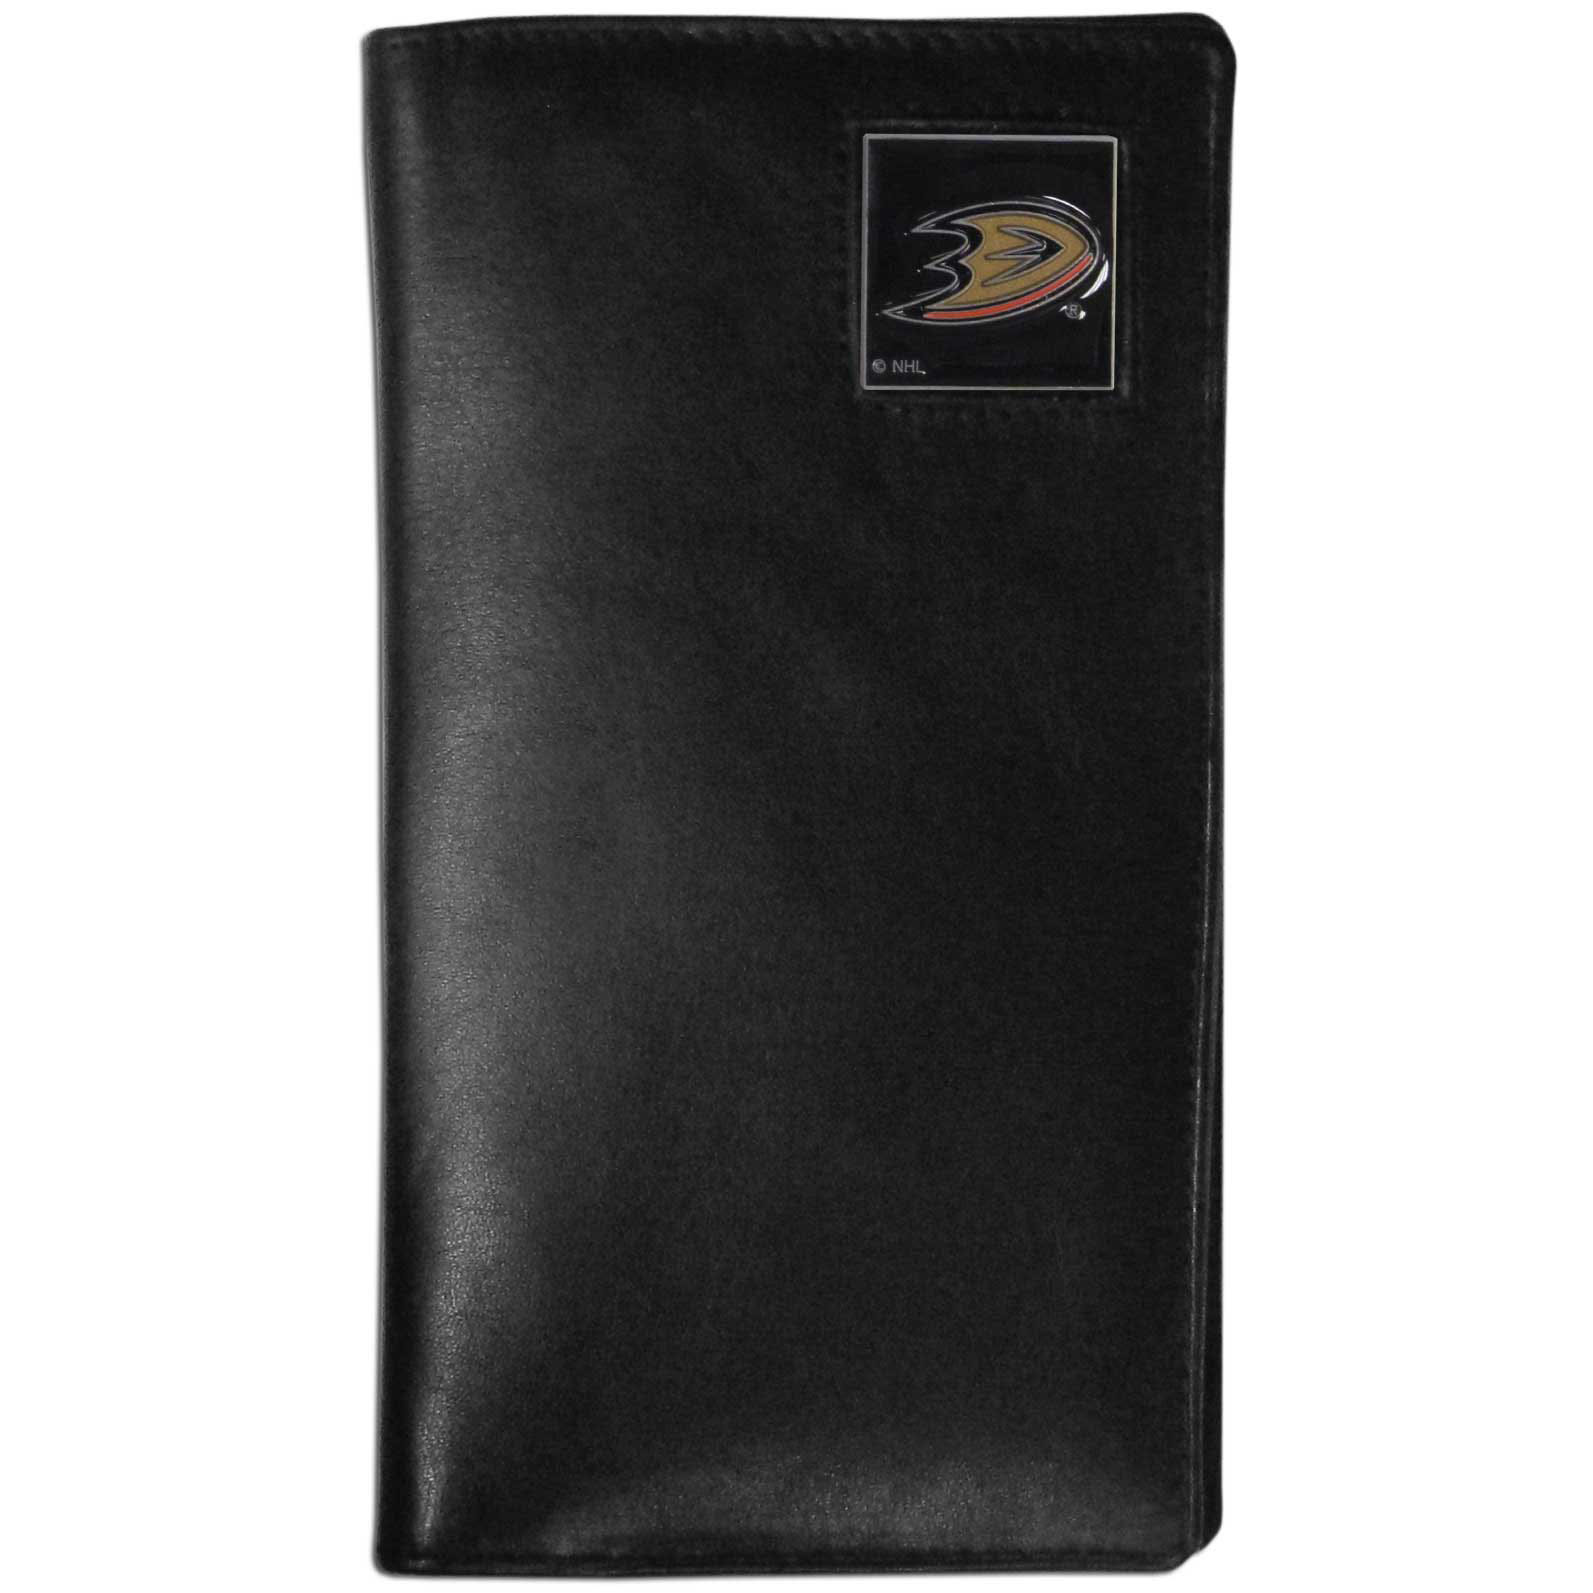 Anaheim Ducks Tall Leather Wallet - This officially licensed Anaheim Ducks tall leather wallet cover is made of high quality leather with a fully cast metal Anaheim Ducks emblem with enameled Anaheim Ducks color detail. The cover fits both side and top loaded checks and includes a large zippered pocket, windowed ID slot, numerous credit card slots and billfold pocket. Thank you for visiting CrazedOutSports